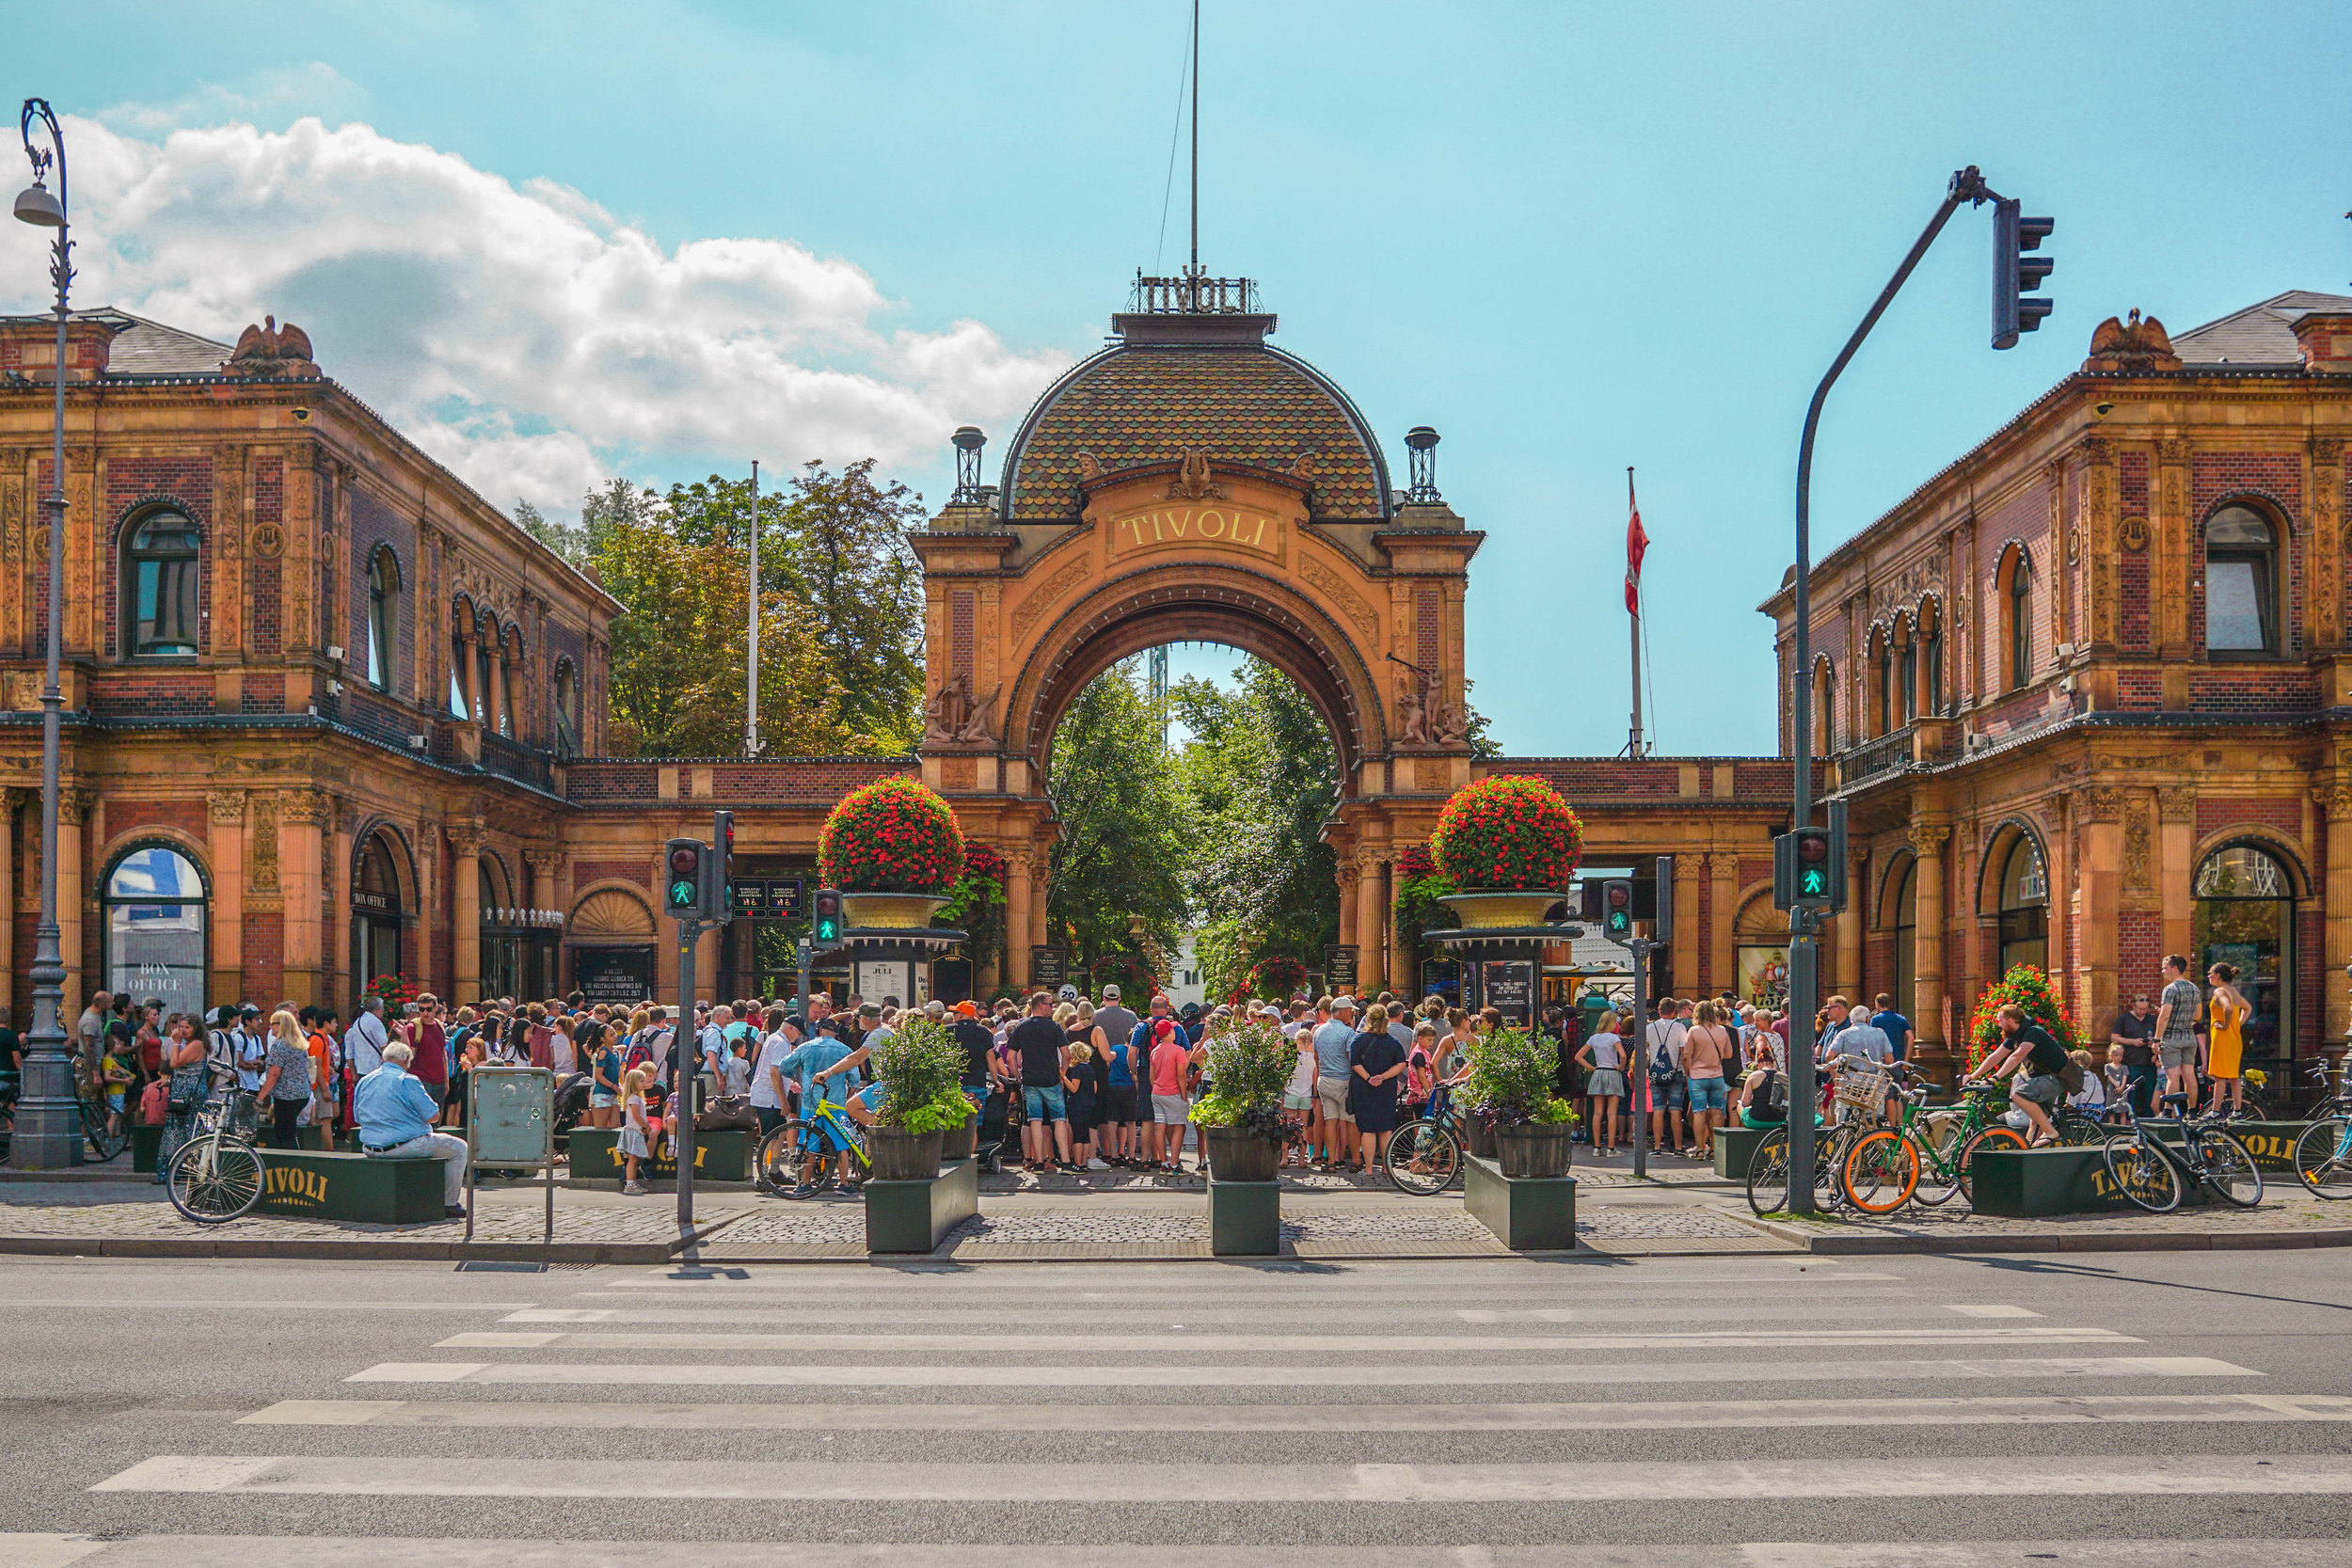 The entrance of Tivoli when it first opens.